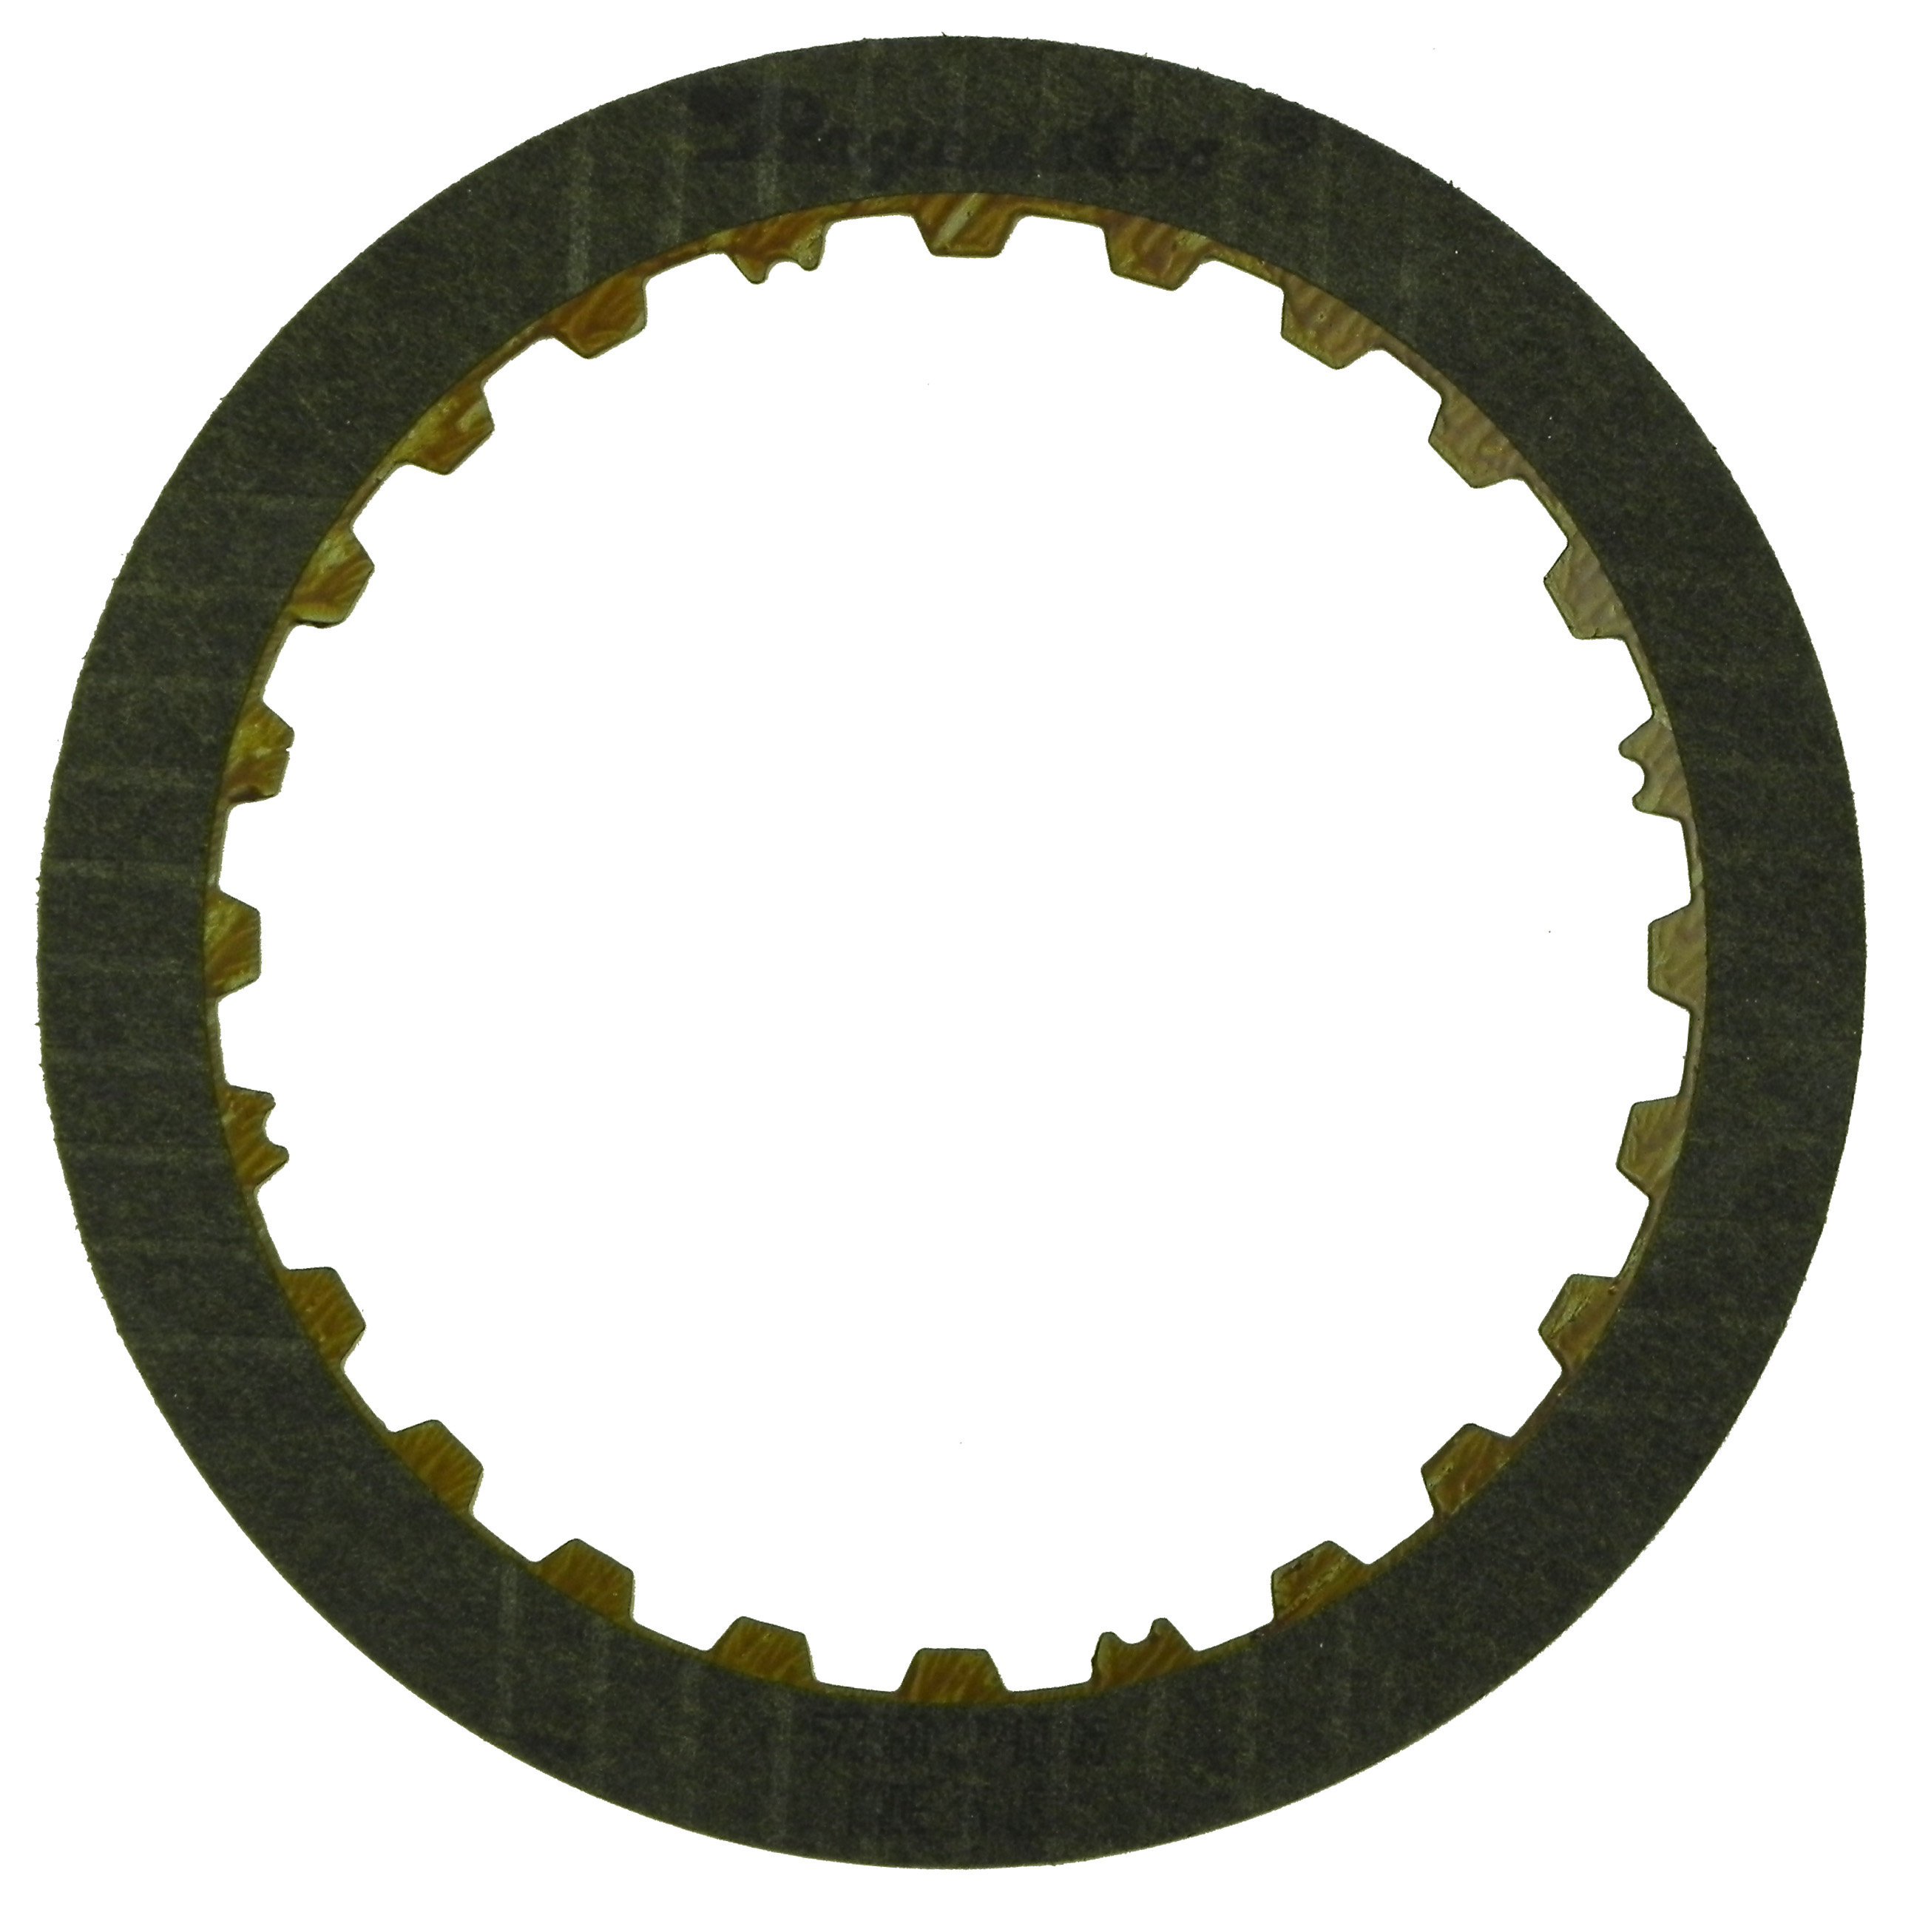 LJ4A-EL High Energy Friction Clutch Plate